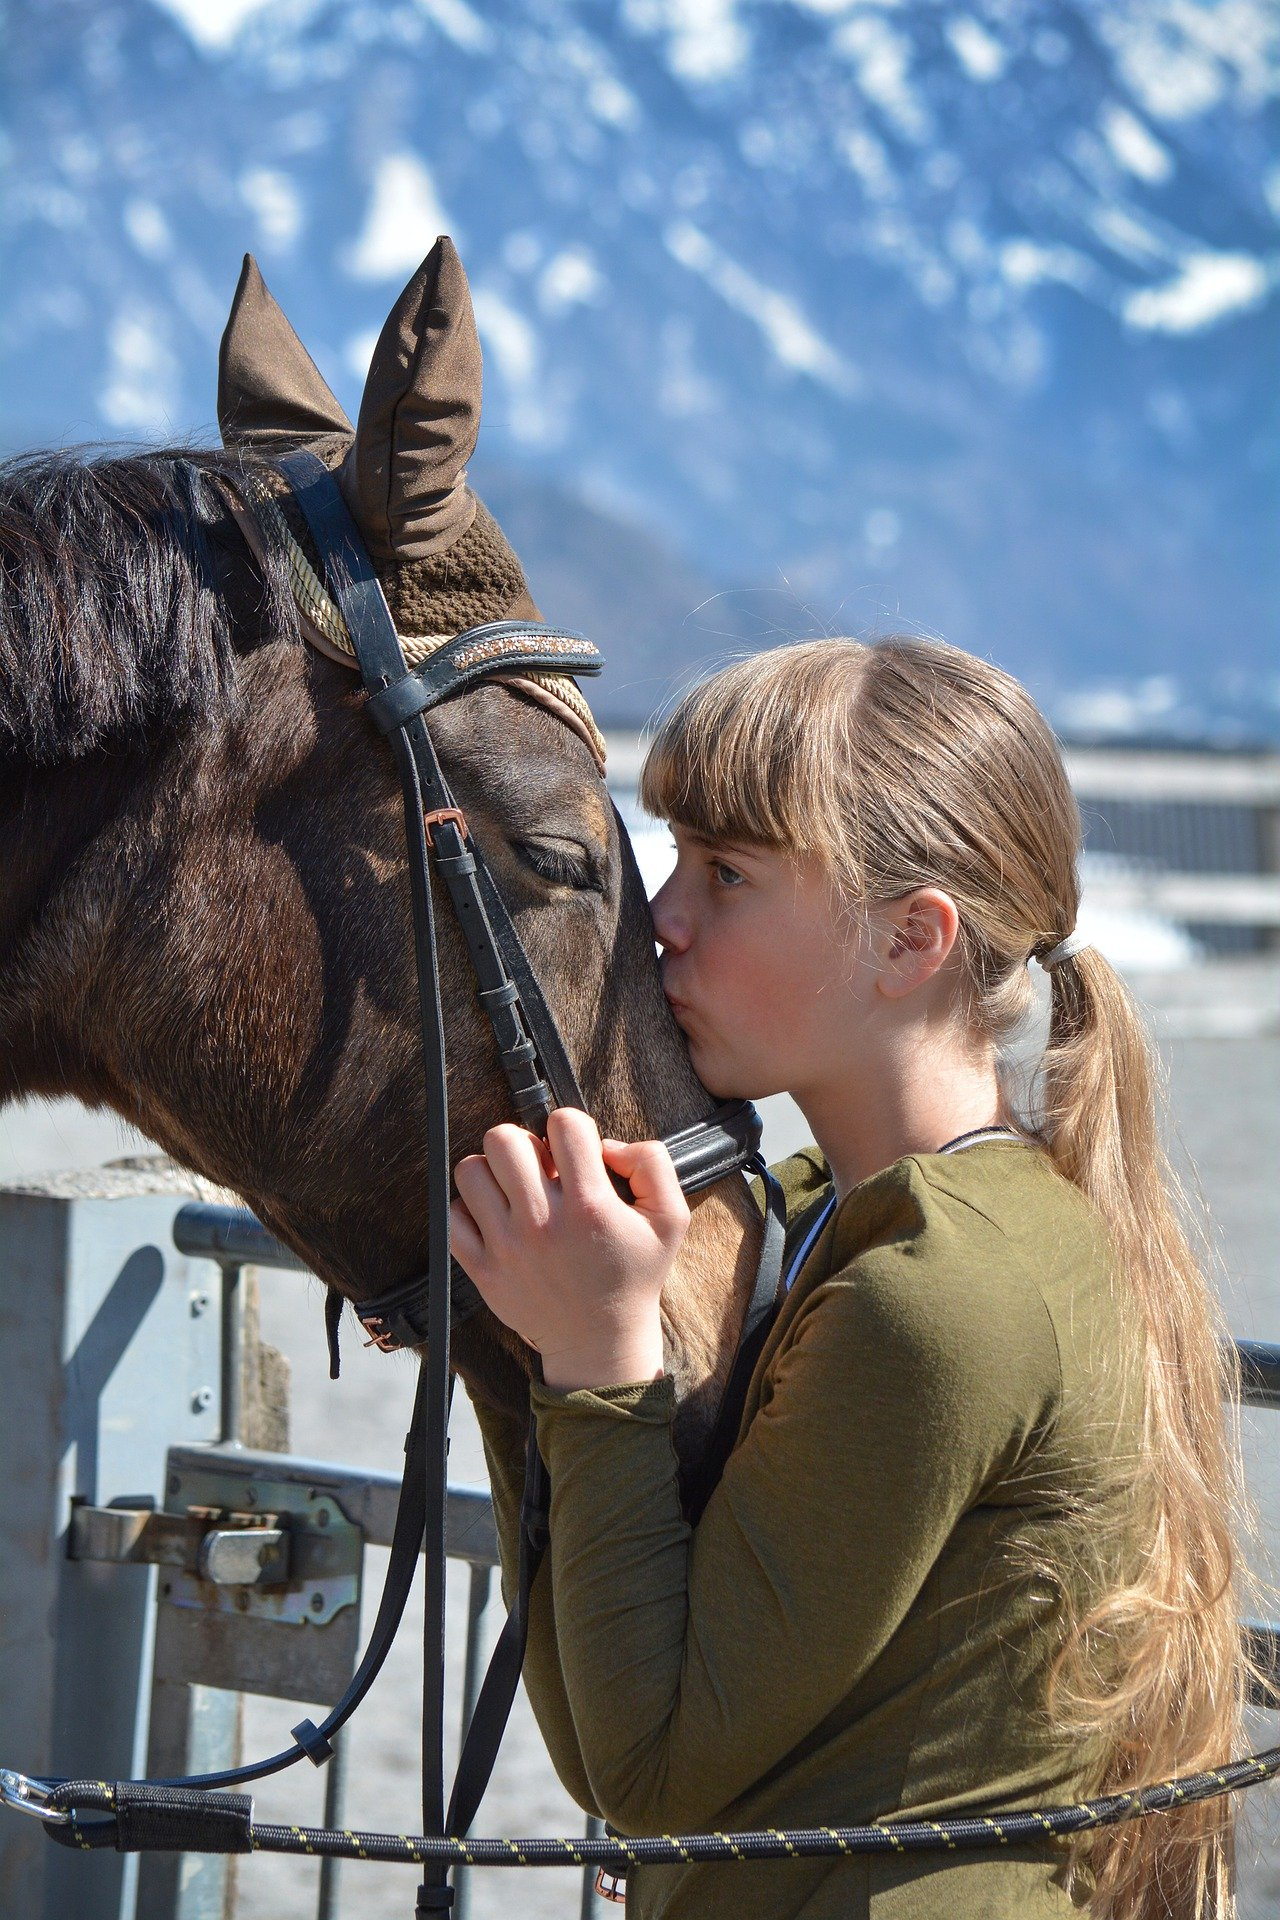 Pictured - An equestrian and kissing a horse   Source: Pixabay